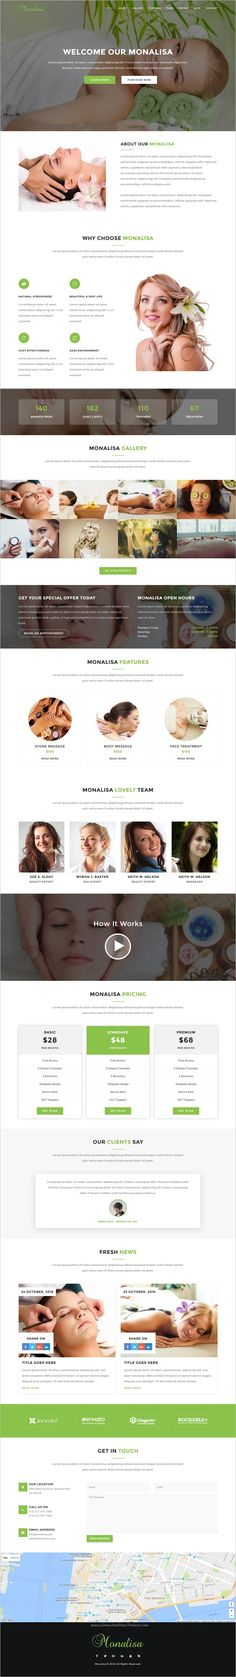 Monalisa is a perfect #Bootstrap HTML template for #spa, salon or beauty parlor #website with 6+ different homepage layouts download now➩ https://themeforest.net/item/monalisa-health-beauti-html-template/18525386?ref=Datasata